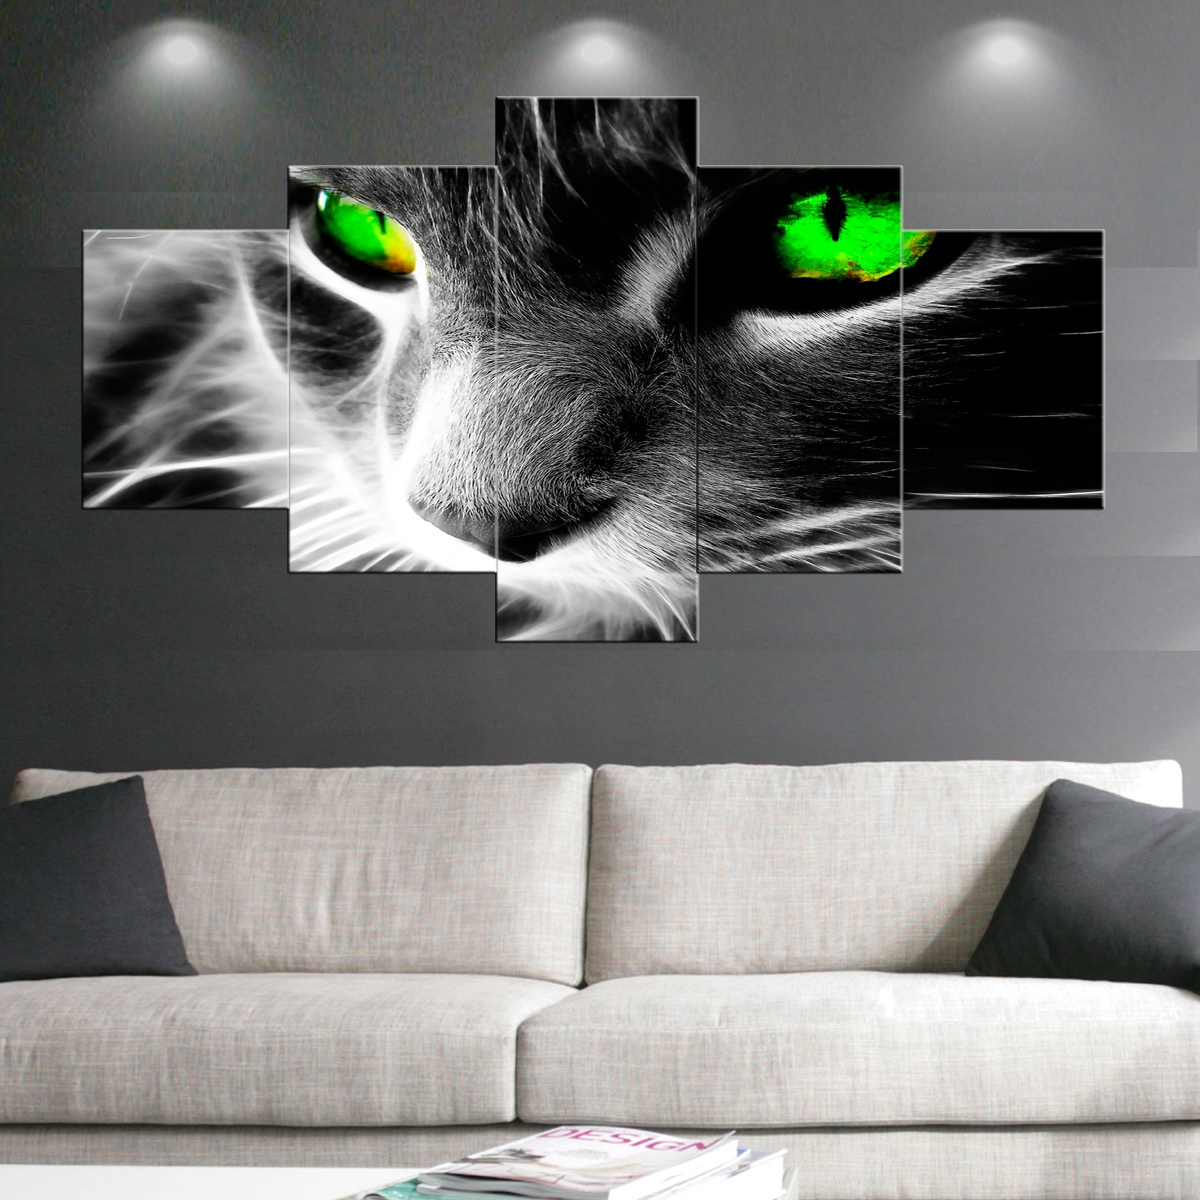 Green Eye Cat Paintings Wall Art Giclee Canvas Prints Animal Head Pictures Paintings on Canvas Stretched and Framed